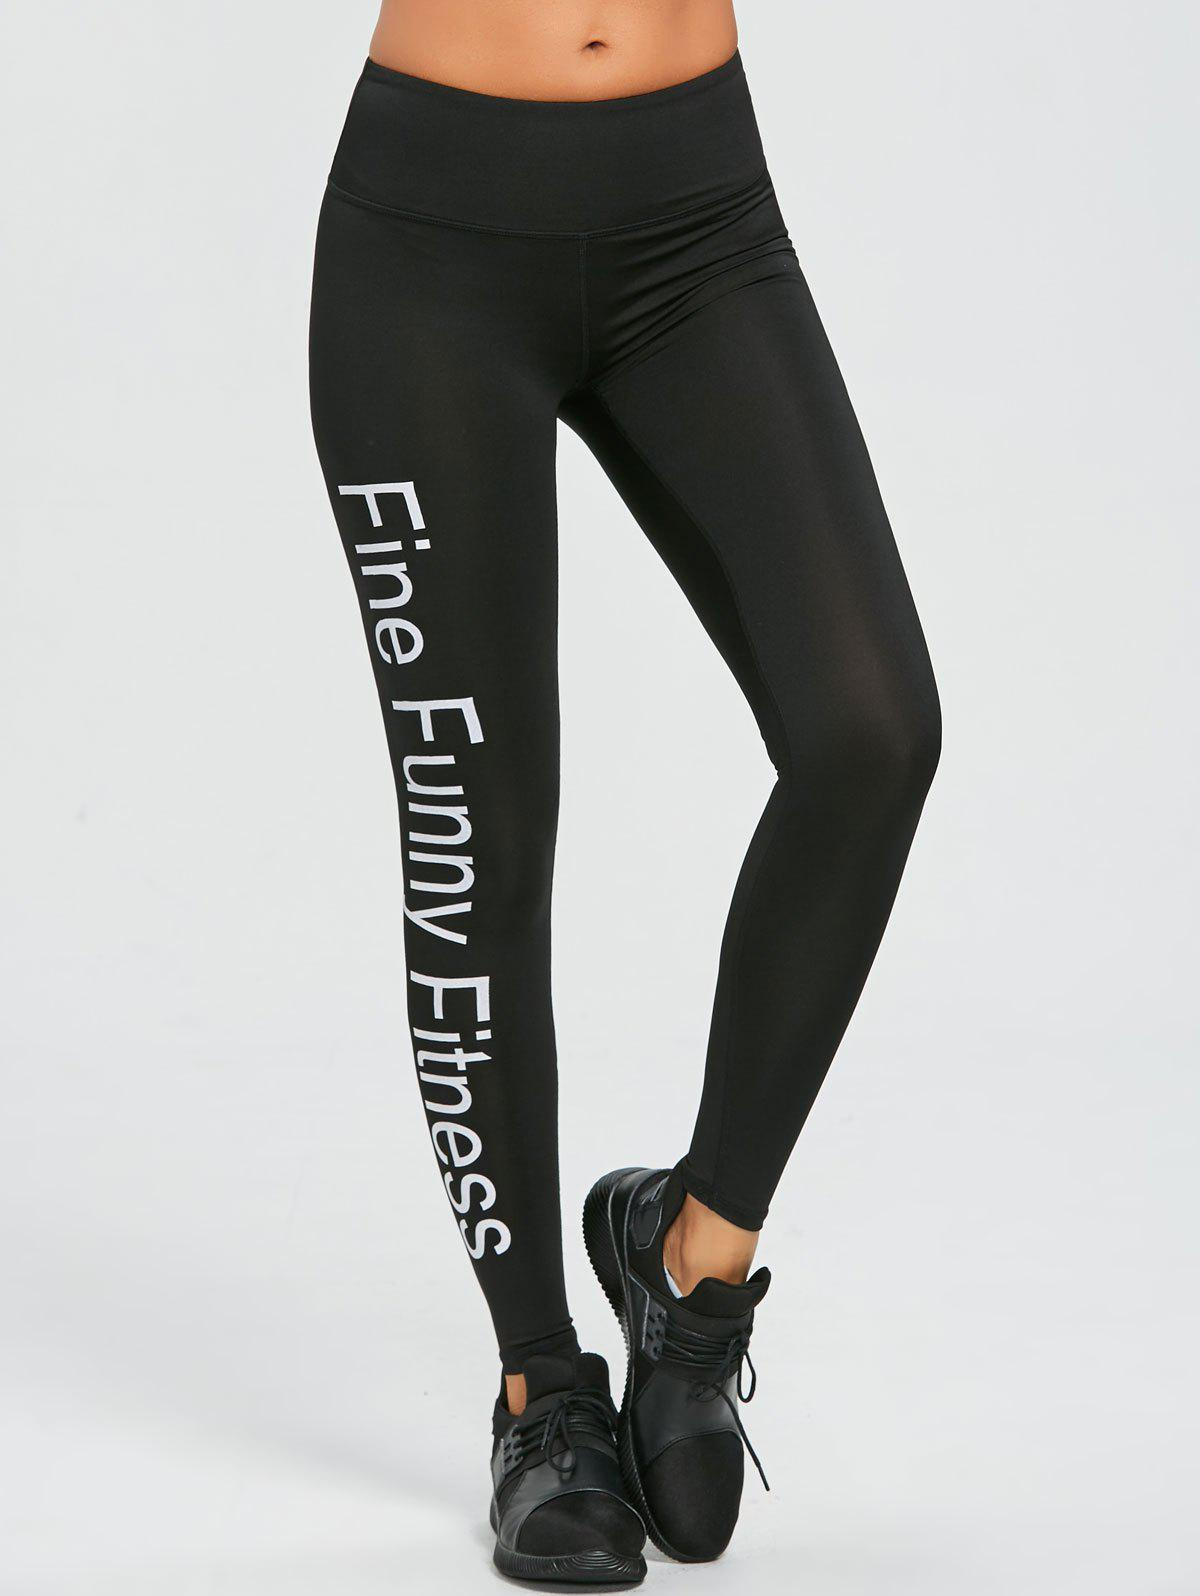 Words Print Exercise Leggings - BLACK S